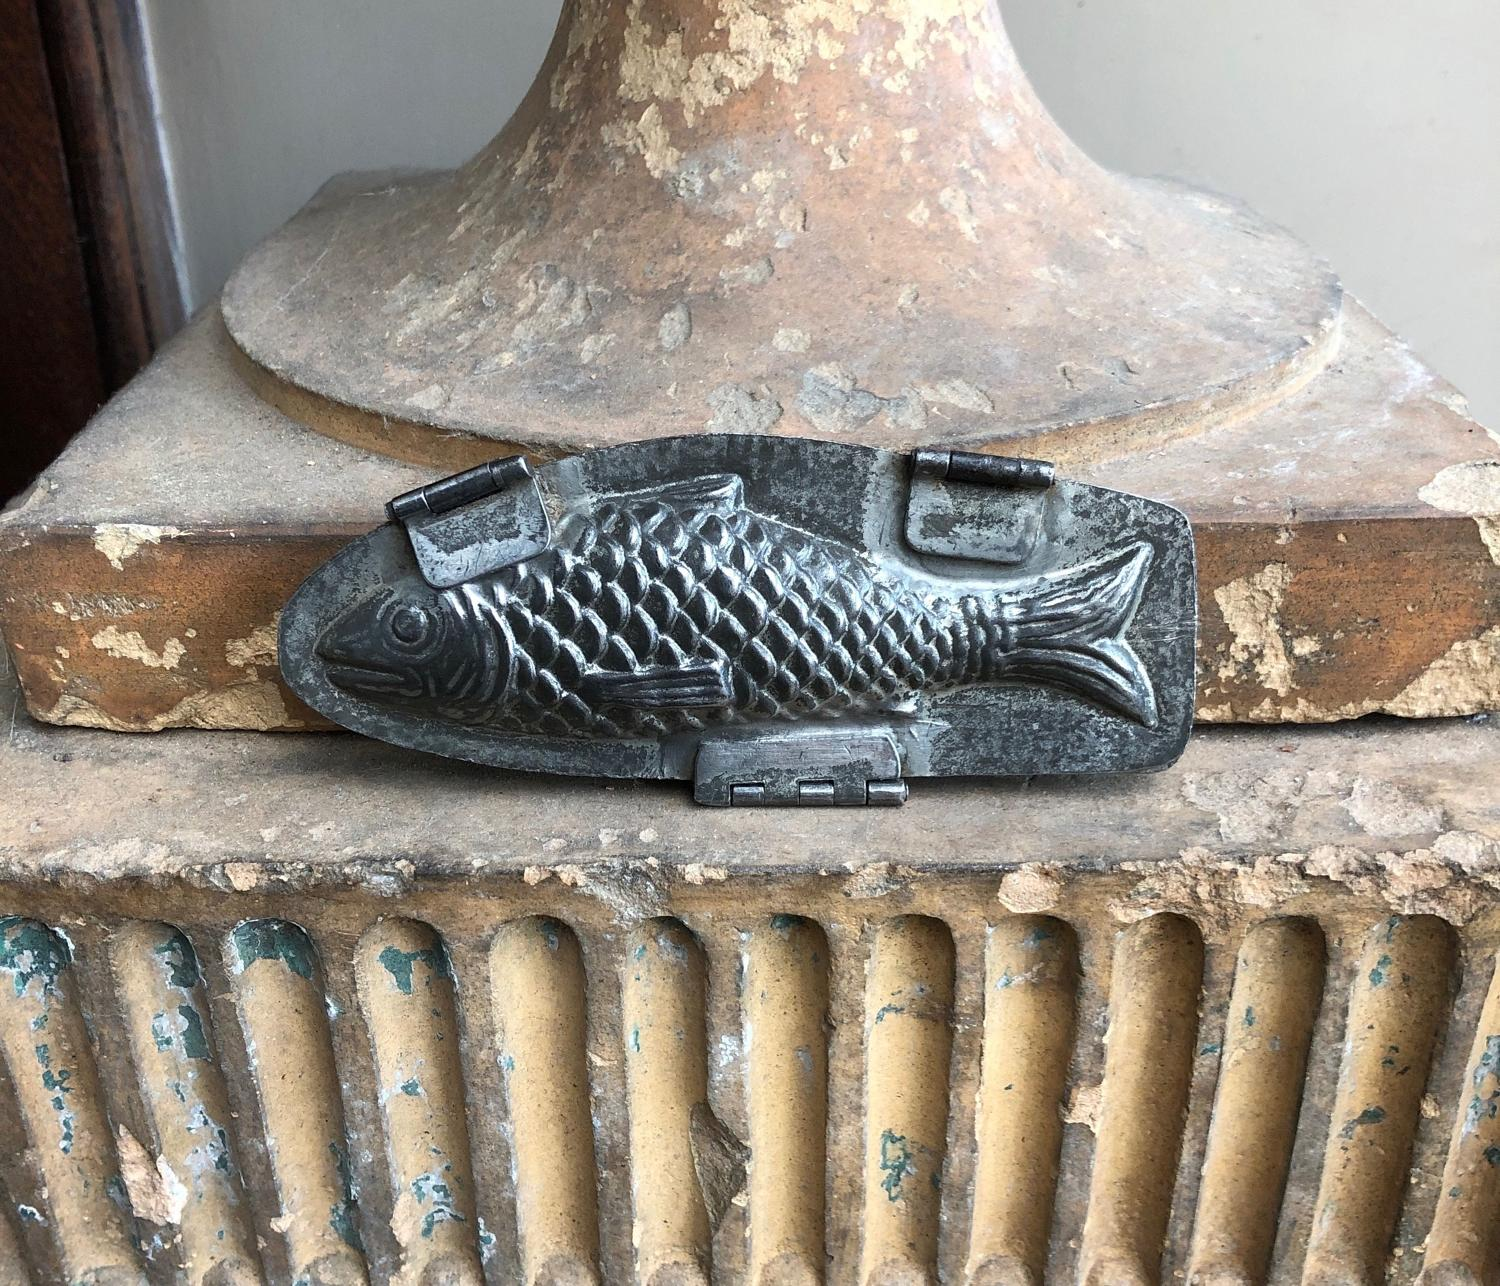 Early 20th Century Hinged Double Sided Chocolate Mould - Fish